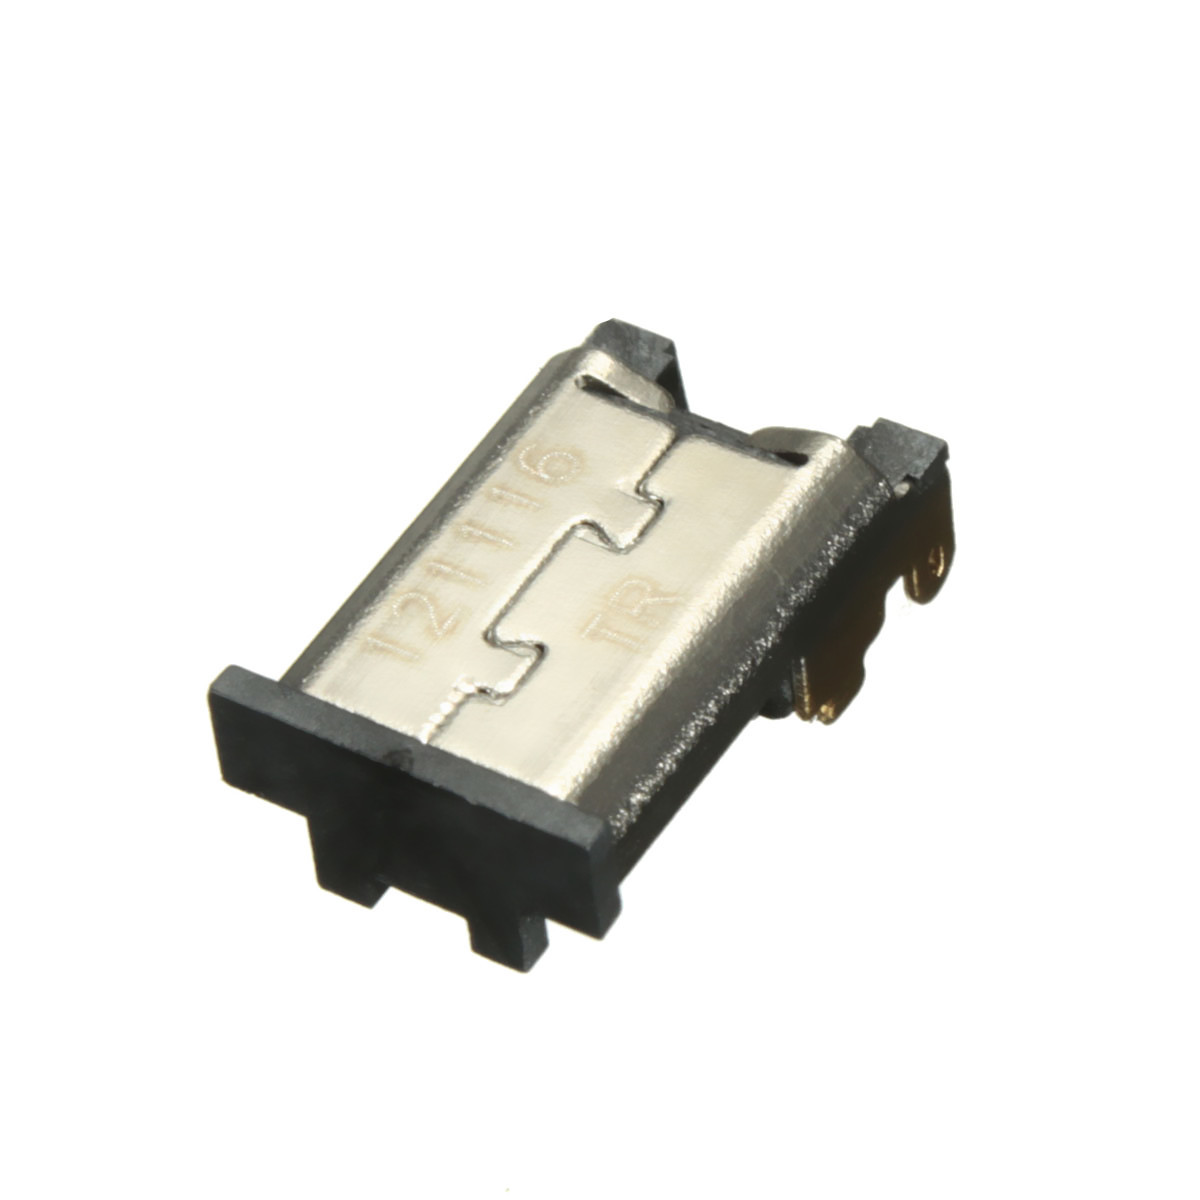 USB Charging Socket Port Interface Plug Maintenance Part For Kindle Fire HD 7 Inch (2012)